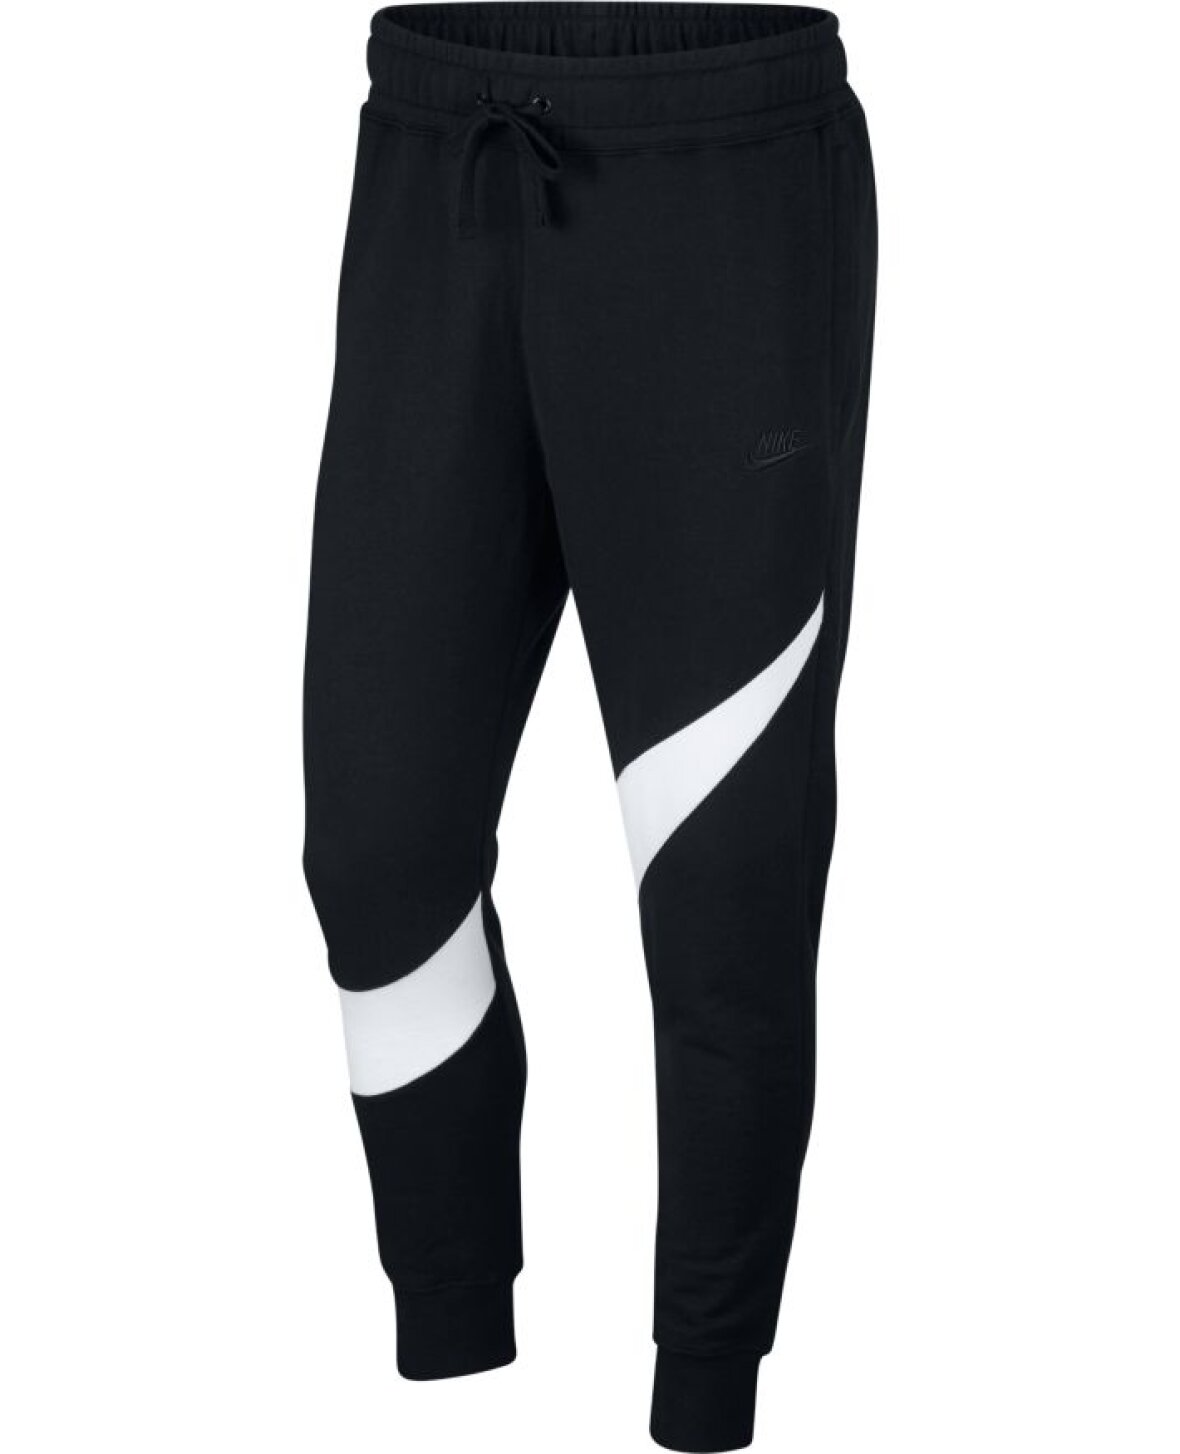 huge selection of 9d911 c13d5 NIKE - M NSW HBR PANT ...